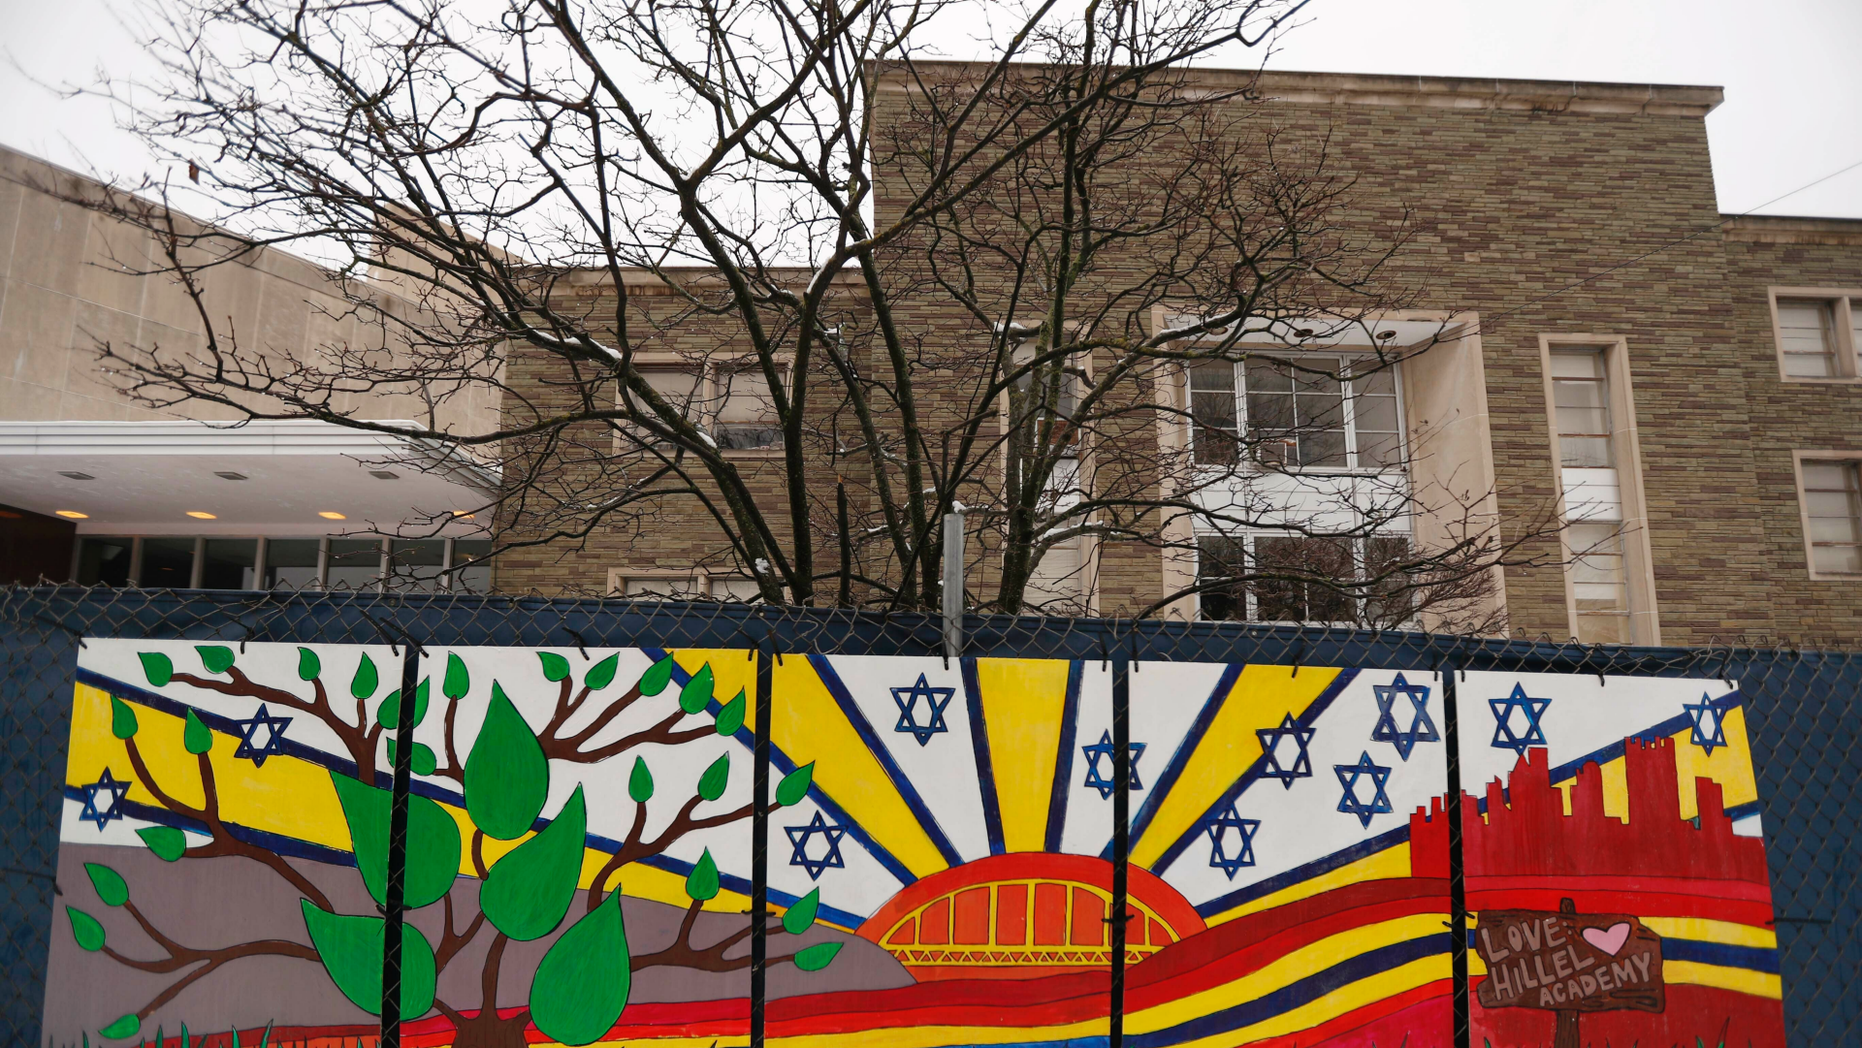 FILE--This file photo from Feb. 11, 2019 shows artwork on a fence around the Tree of Life Synagogue in Pittsburgh where 11 people were killed and seven others injured during an attack on in October of 2018. The synagogue is inviting young people worldwide to submit artwork in an art project called #HeartsTogether: The Art of Rebuilding. to cover more of the fencing that surrounds the still-shuttered building. They are looking for original, uplifting images and graphics to be printed on windscreens that will cover the temporary perimeter fencing. (AP Photo/Keith Srakocic, File)